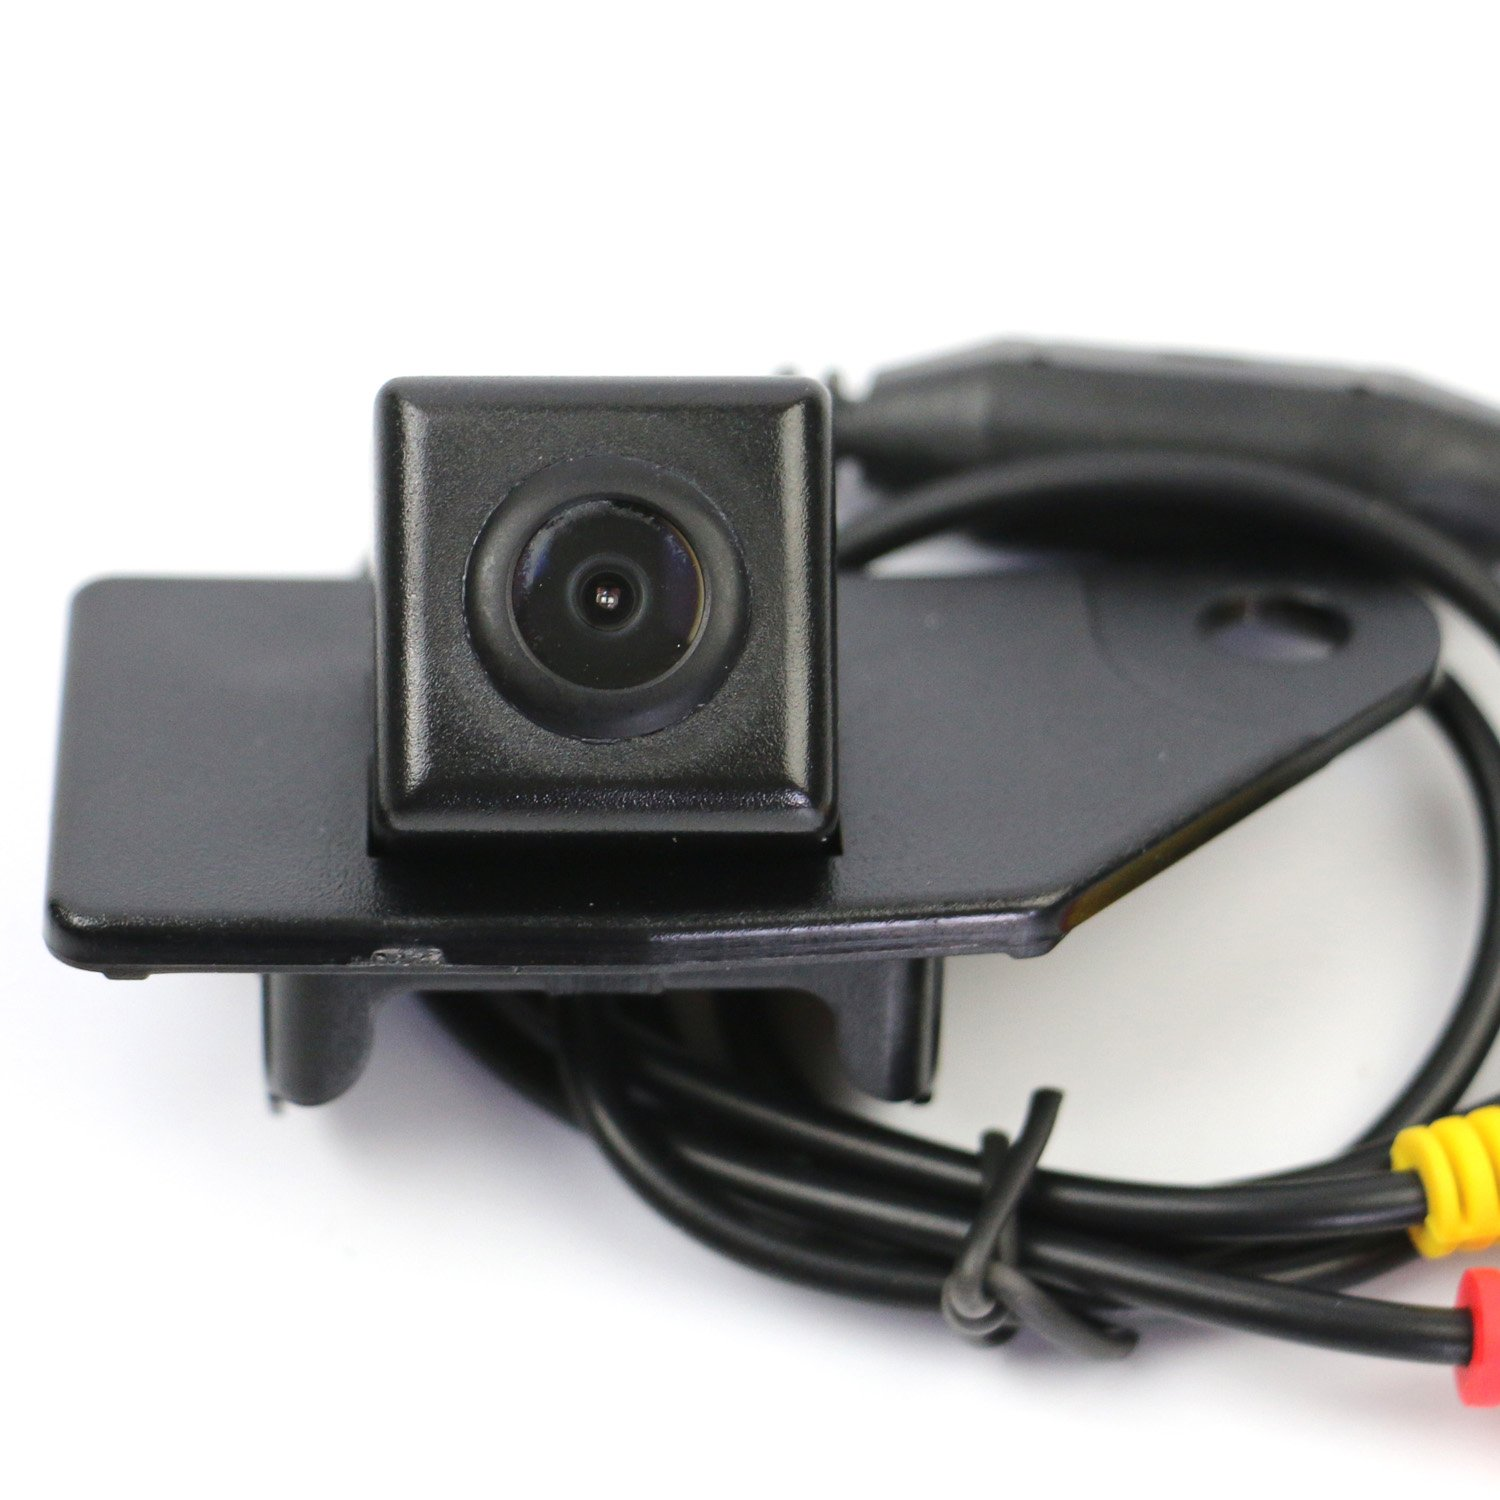 Autostereo Car Rear View Back Camera for Mitsubishi ASX RVR Car Rear Reverse Backup Parking Camera Waterproof Night Vision Autostereo/_TECH ZW-RCD-124